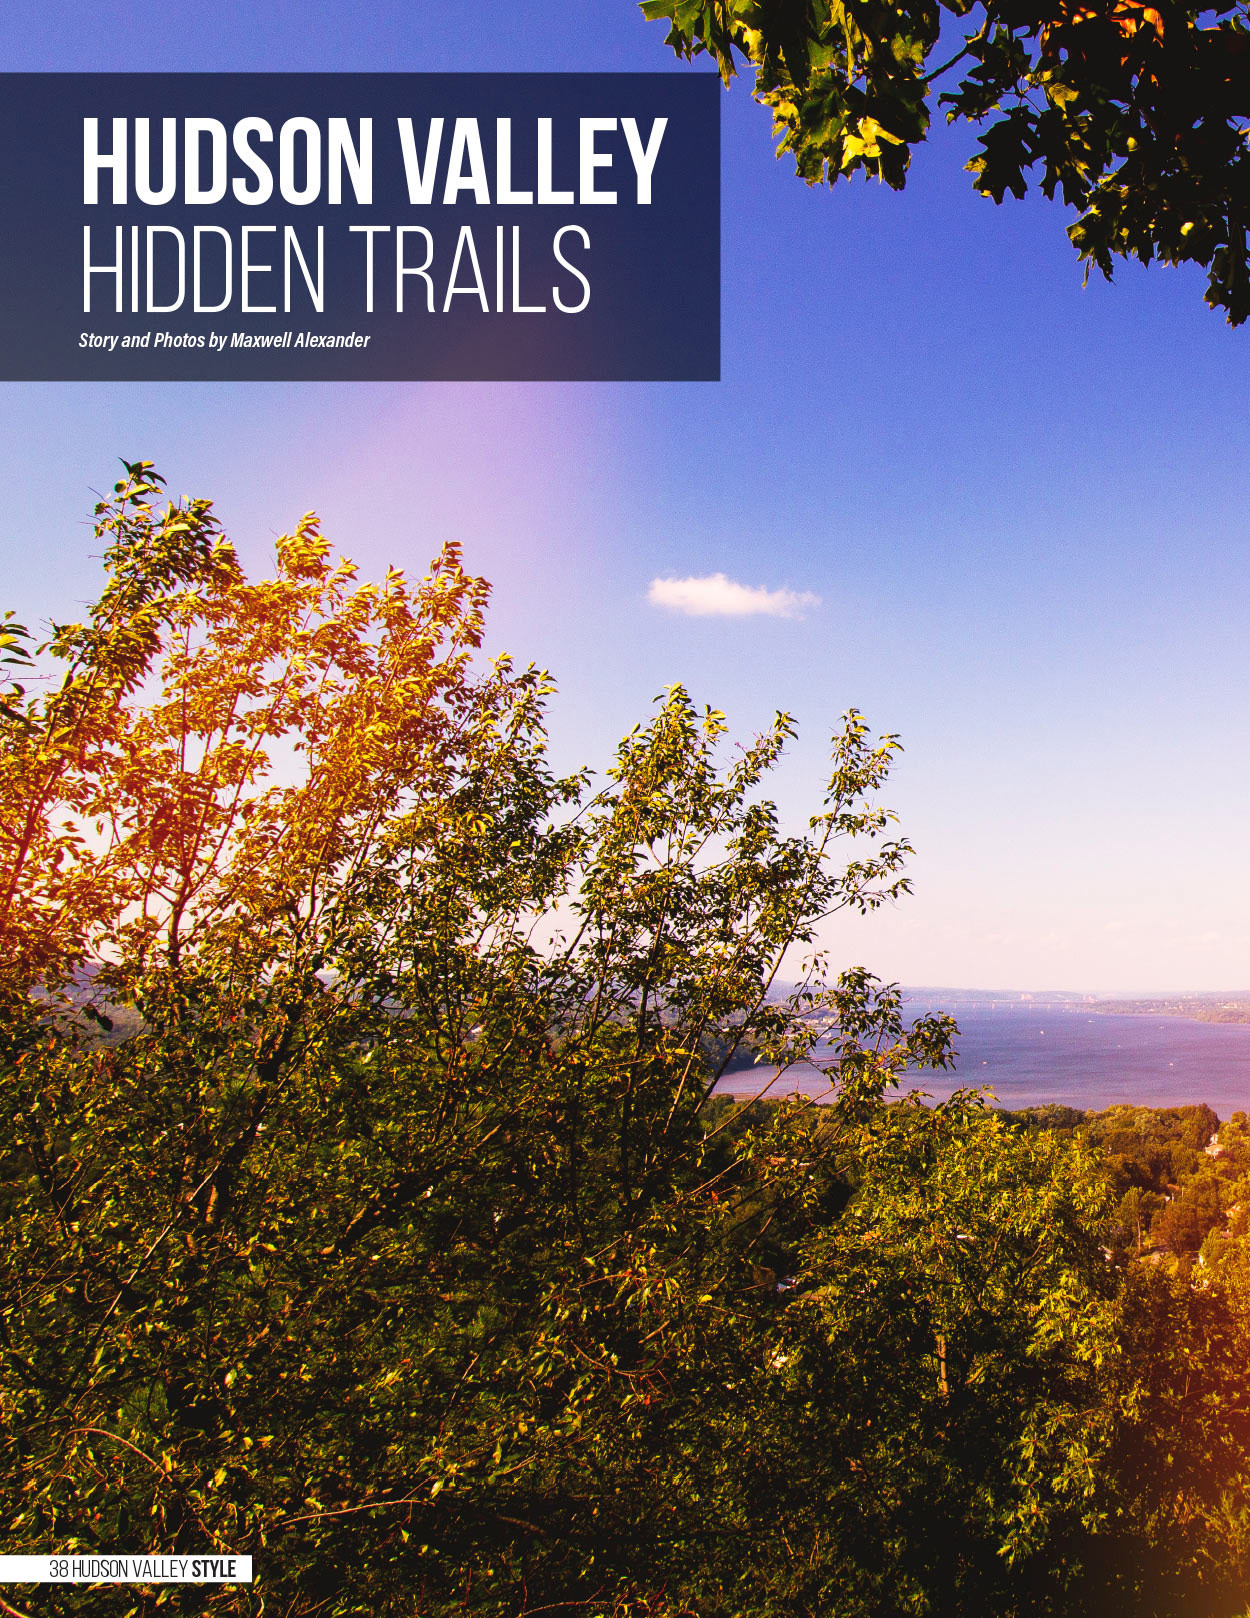 Hudson Valley Hidden Trails - Story and Photography by Maxwell Alexander